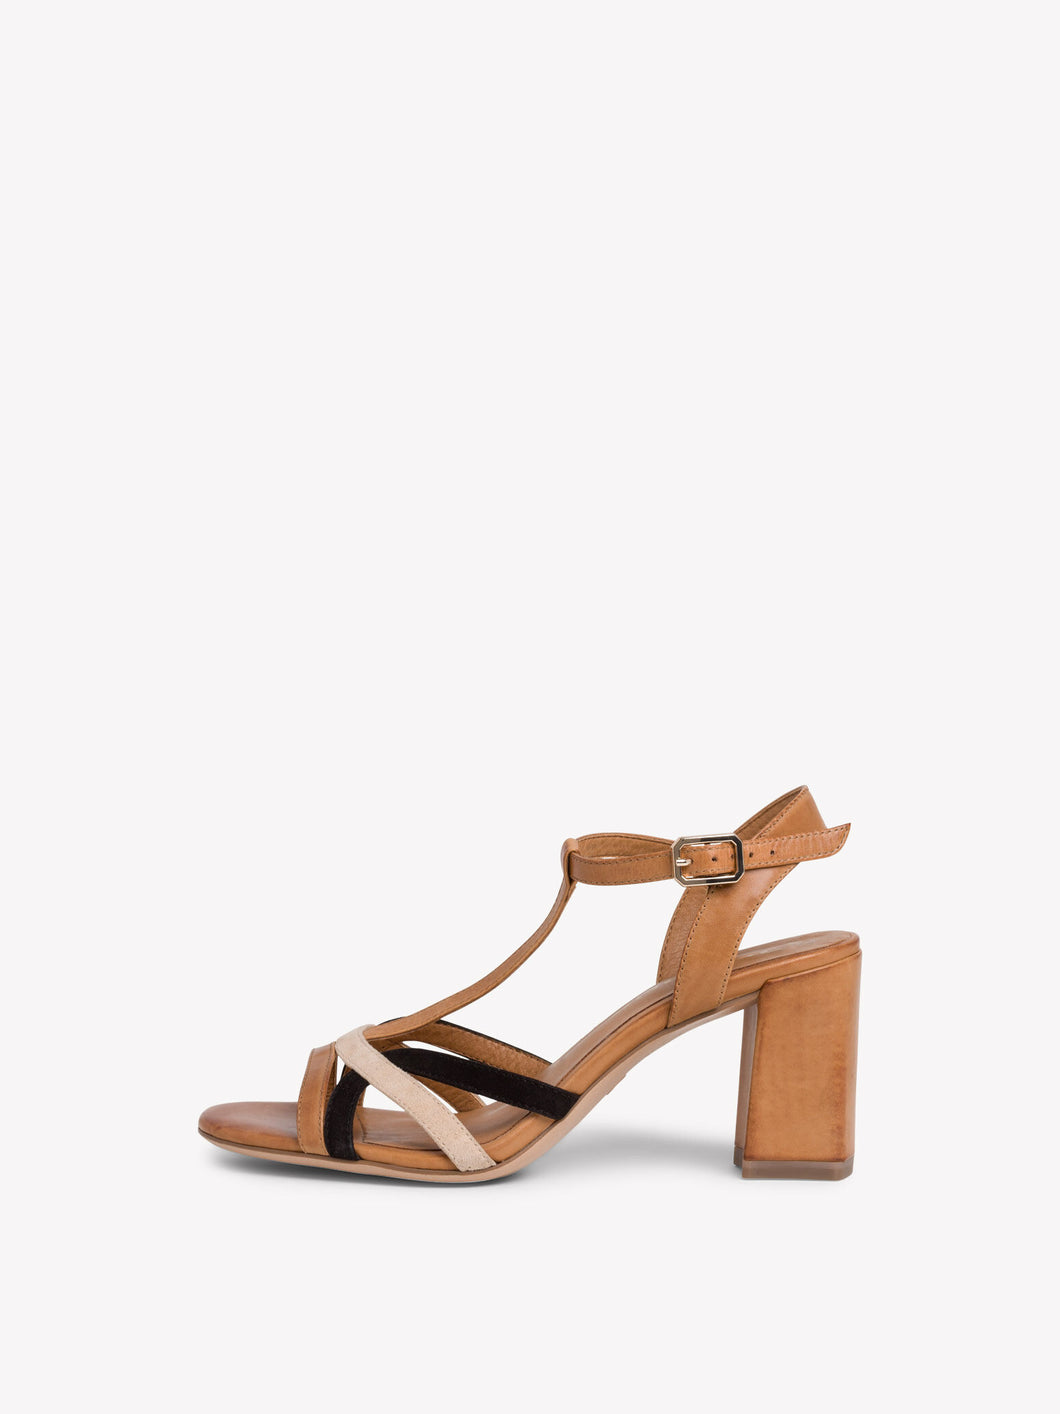 Tamaris Women's 1-28025-24 Heeled Leather Sandals Cognac Brown